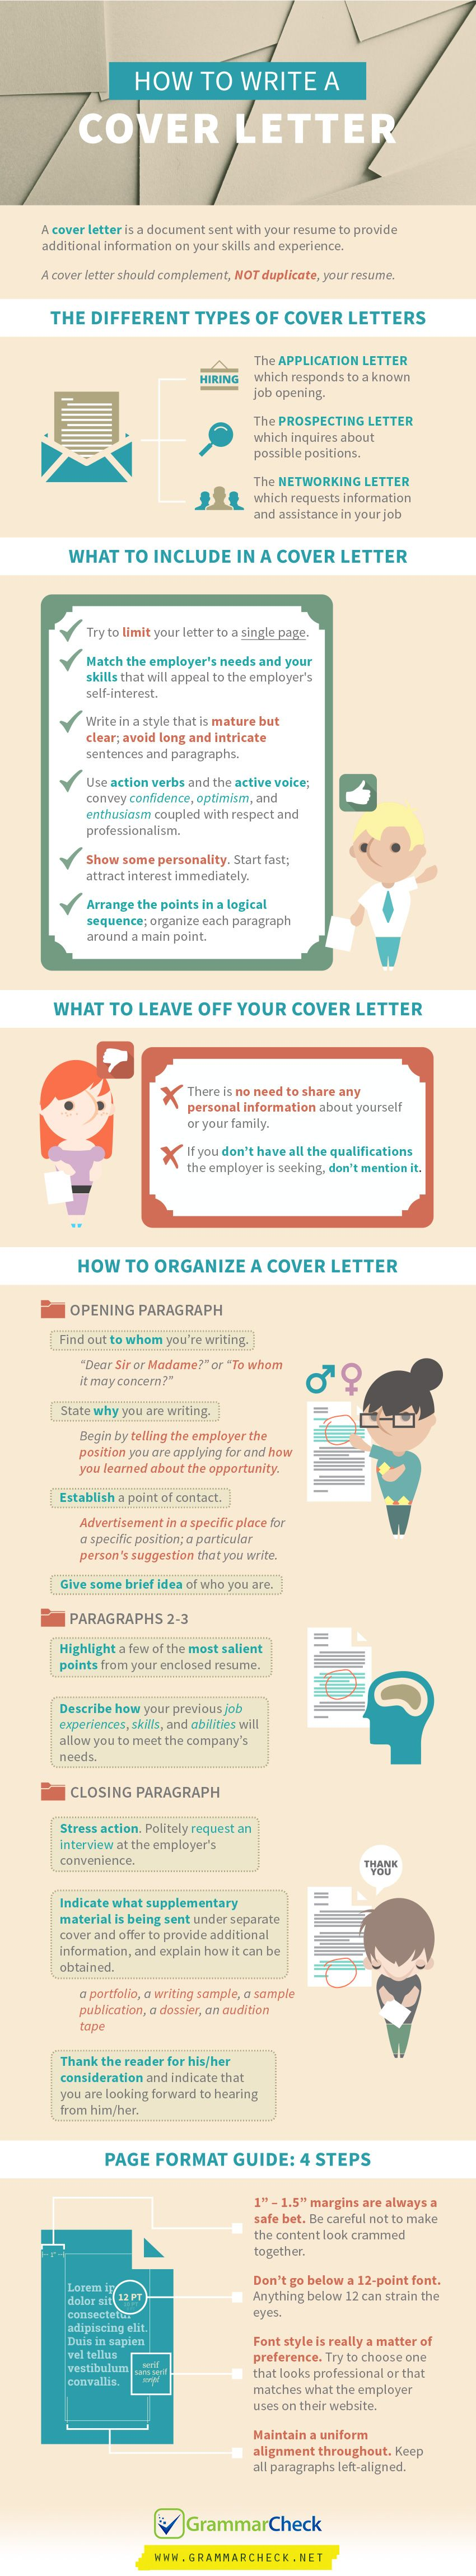 How To Write A Cover Letter €� Step By Step